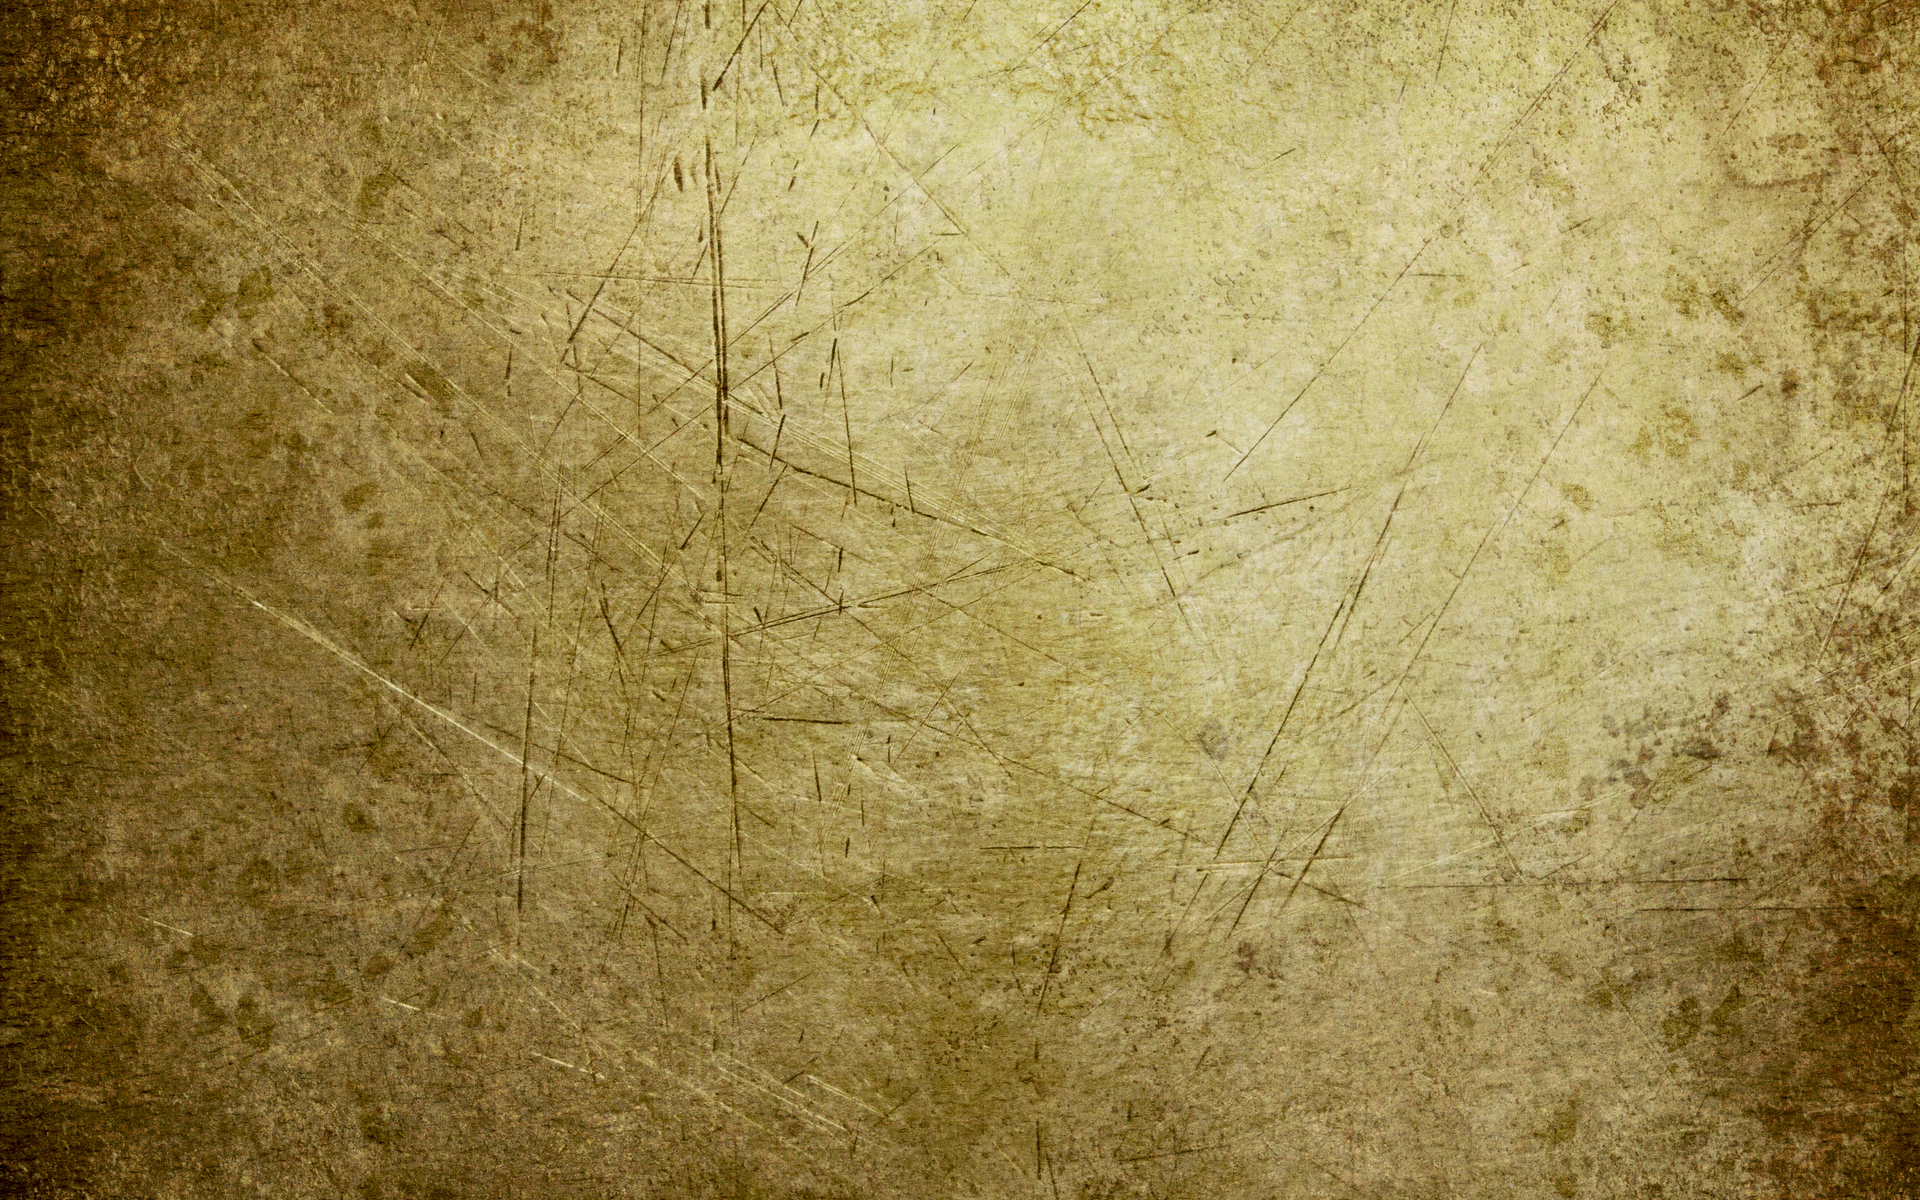 Stone Texture Background : Texture stone download photo background